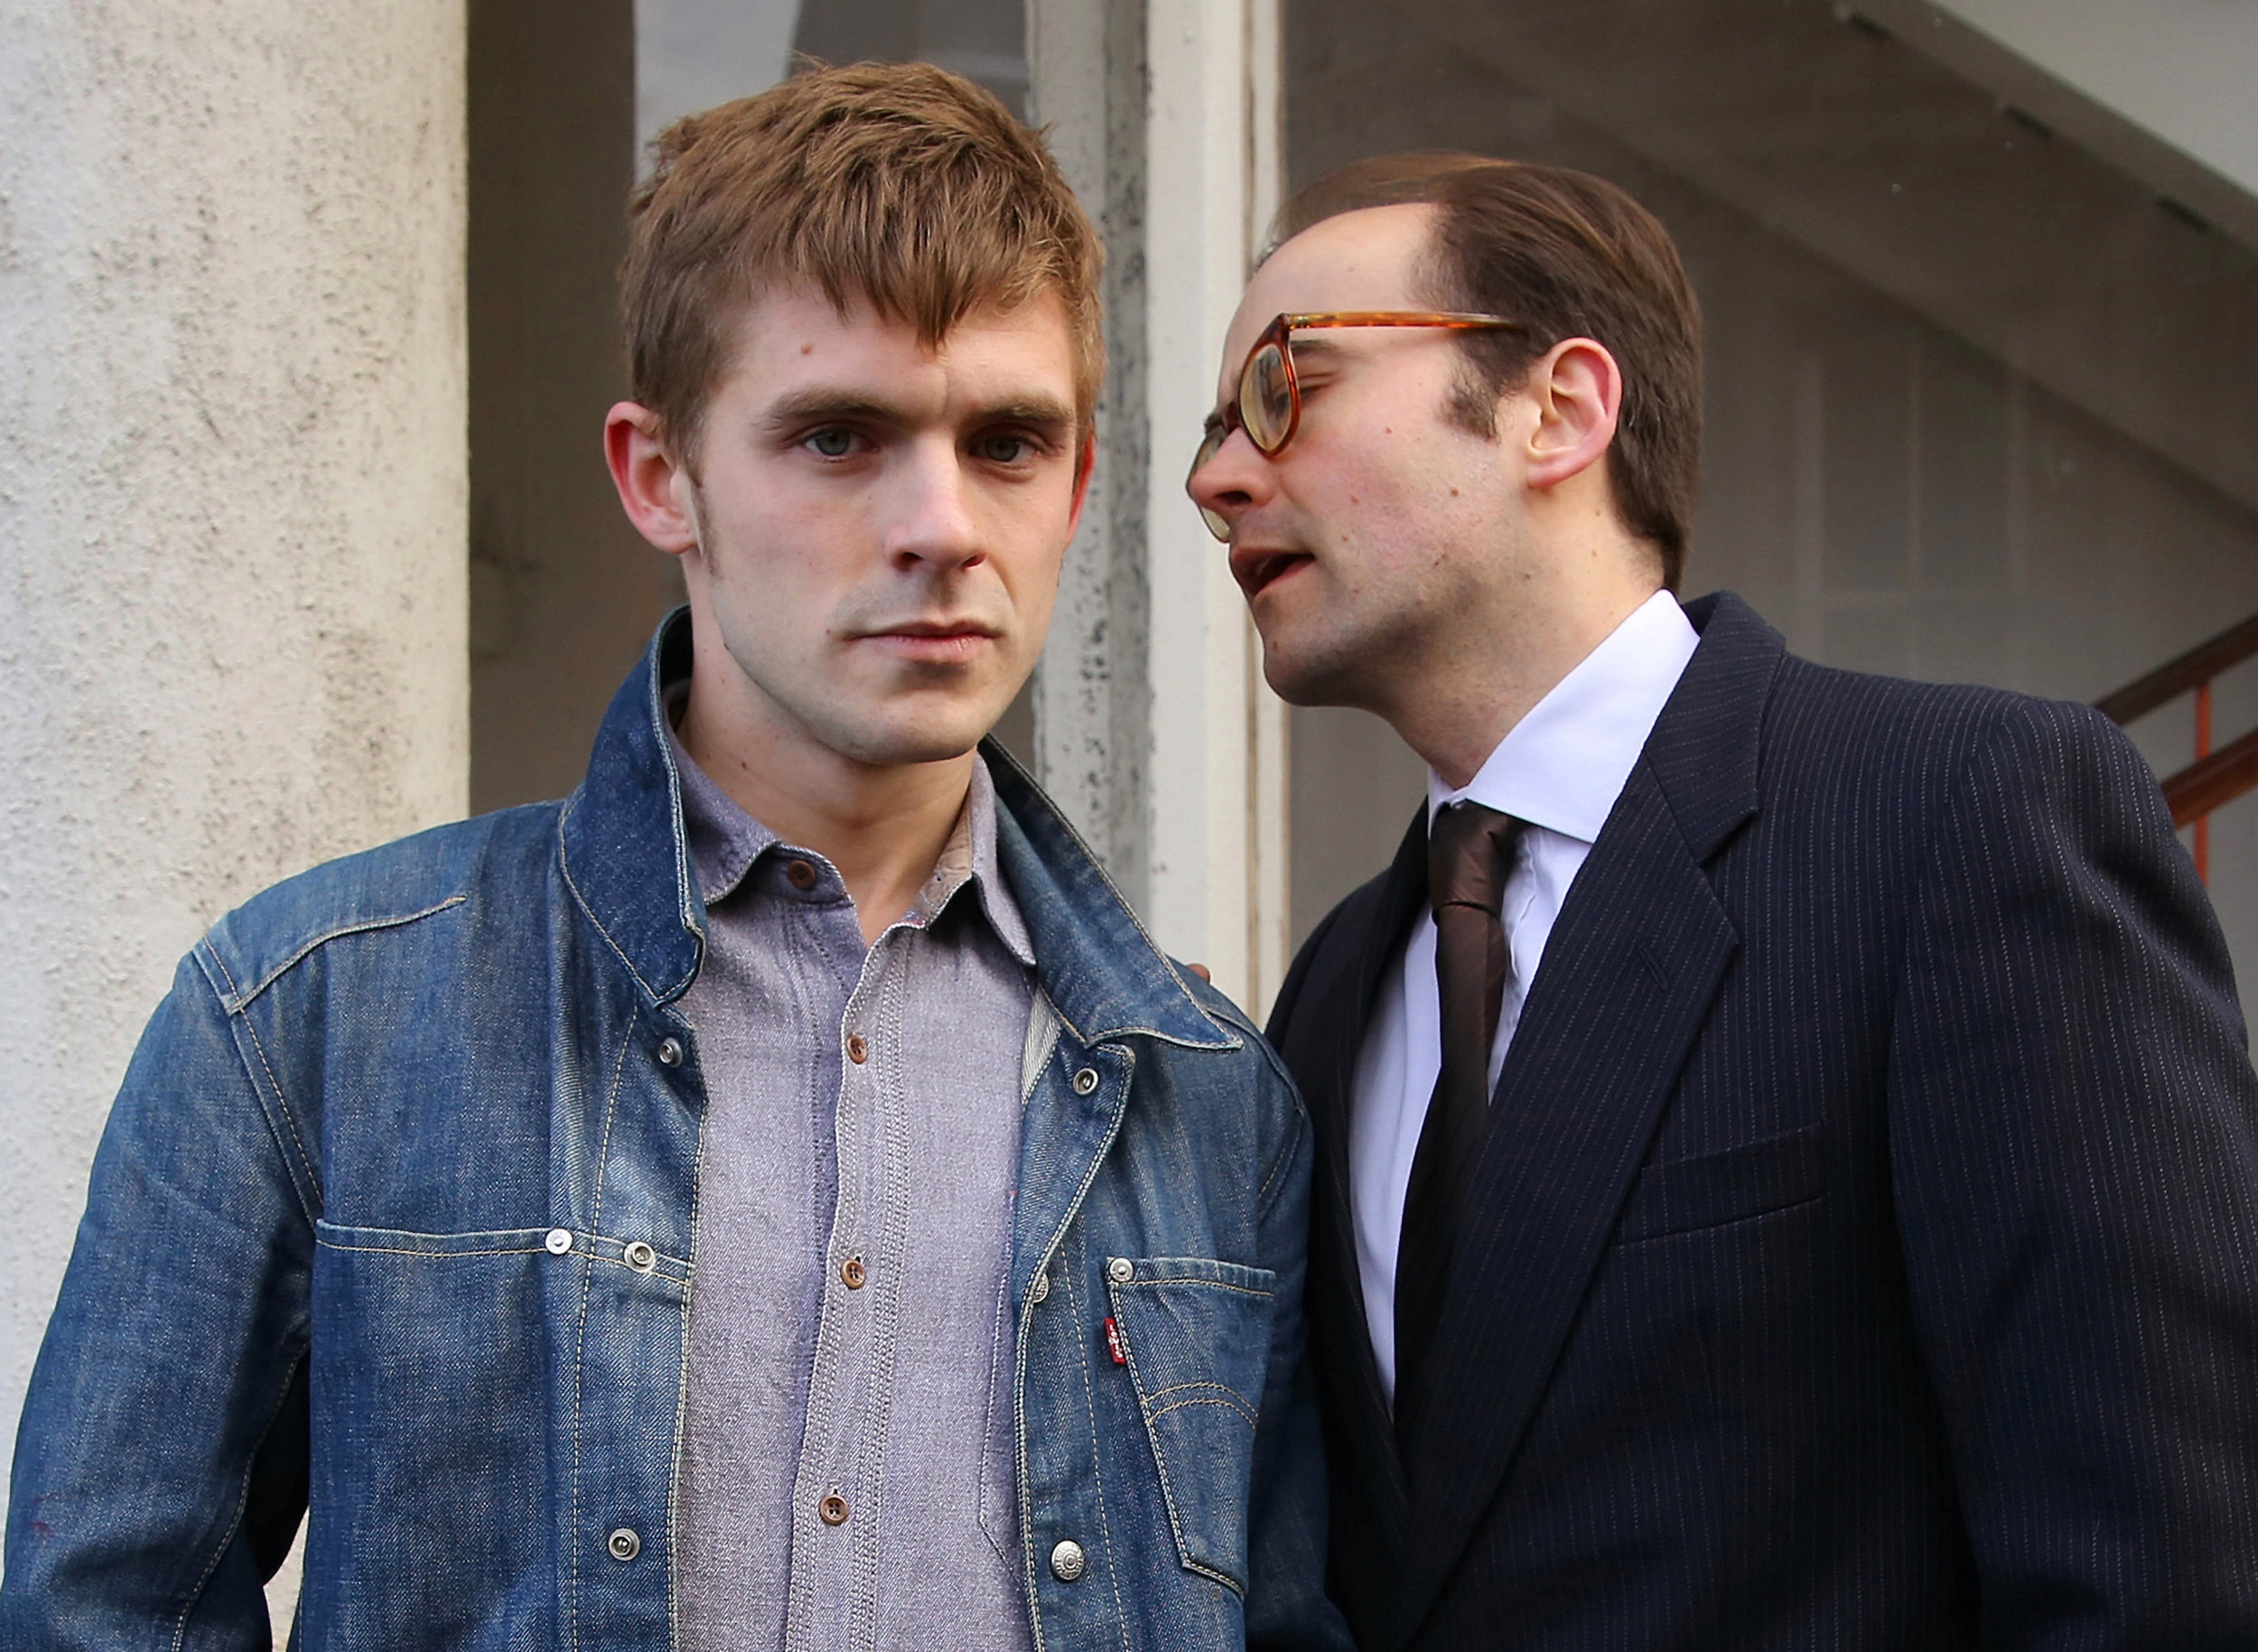 JOSEPH CARTER AS RAY GOSLING AND MICHAEL JUSTICE AS ALLAN HORSFALL (LEFT TO RIGHT). (PHOTO CREDIT SHAY ROWAN)